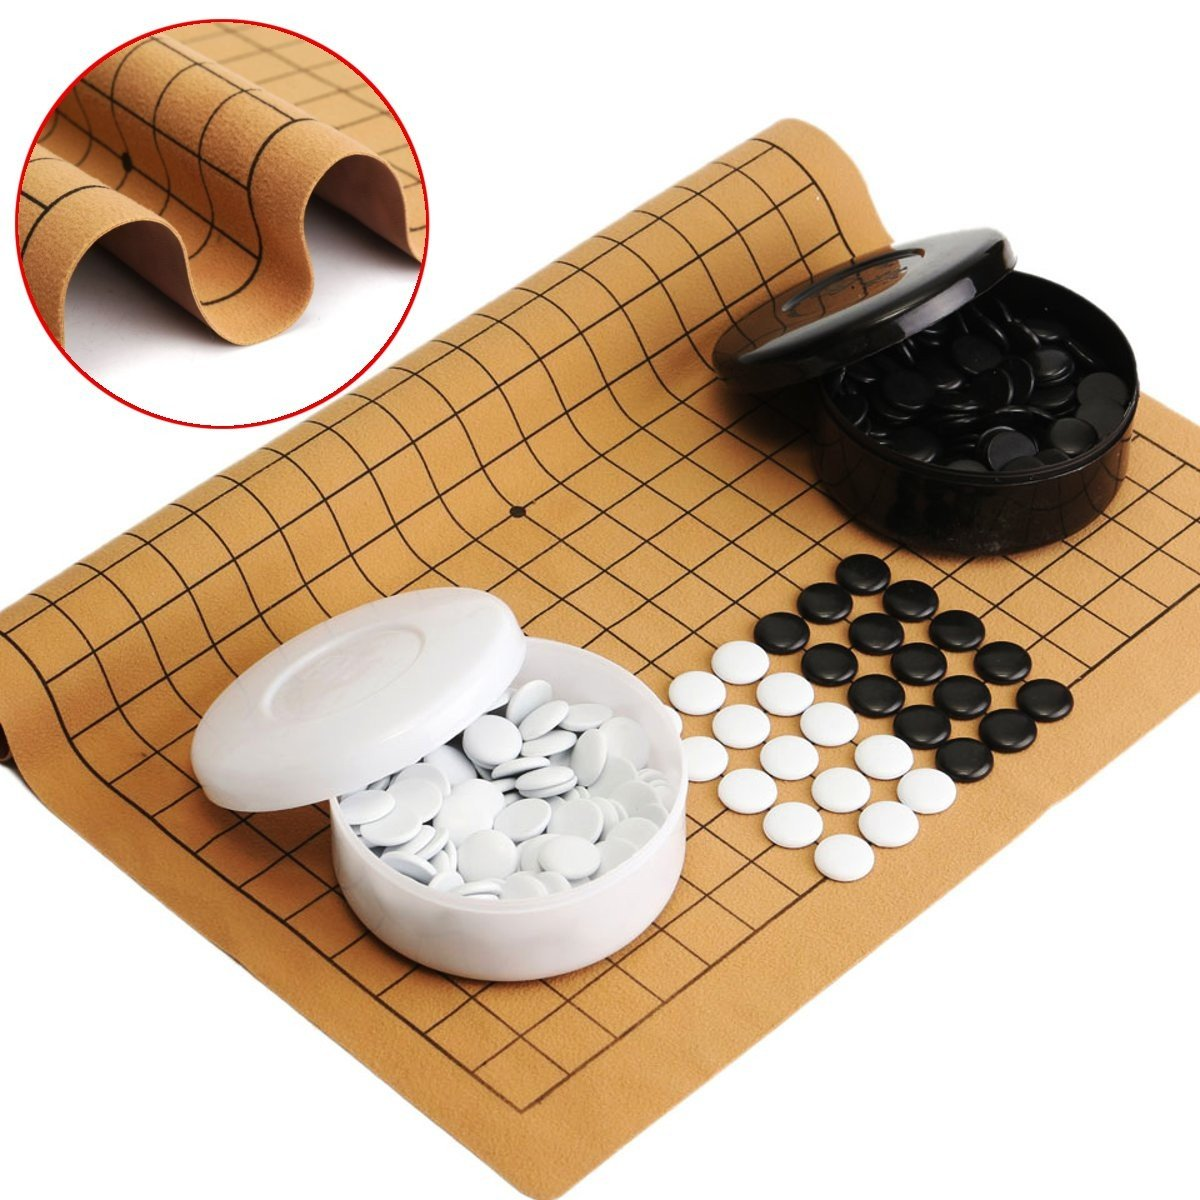 Tuersuer Warm and Beautiful 361PCS Weiqi Professional Toy,Go Game Suede Leather Sheet Chinese Play Fun Educational Toys